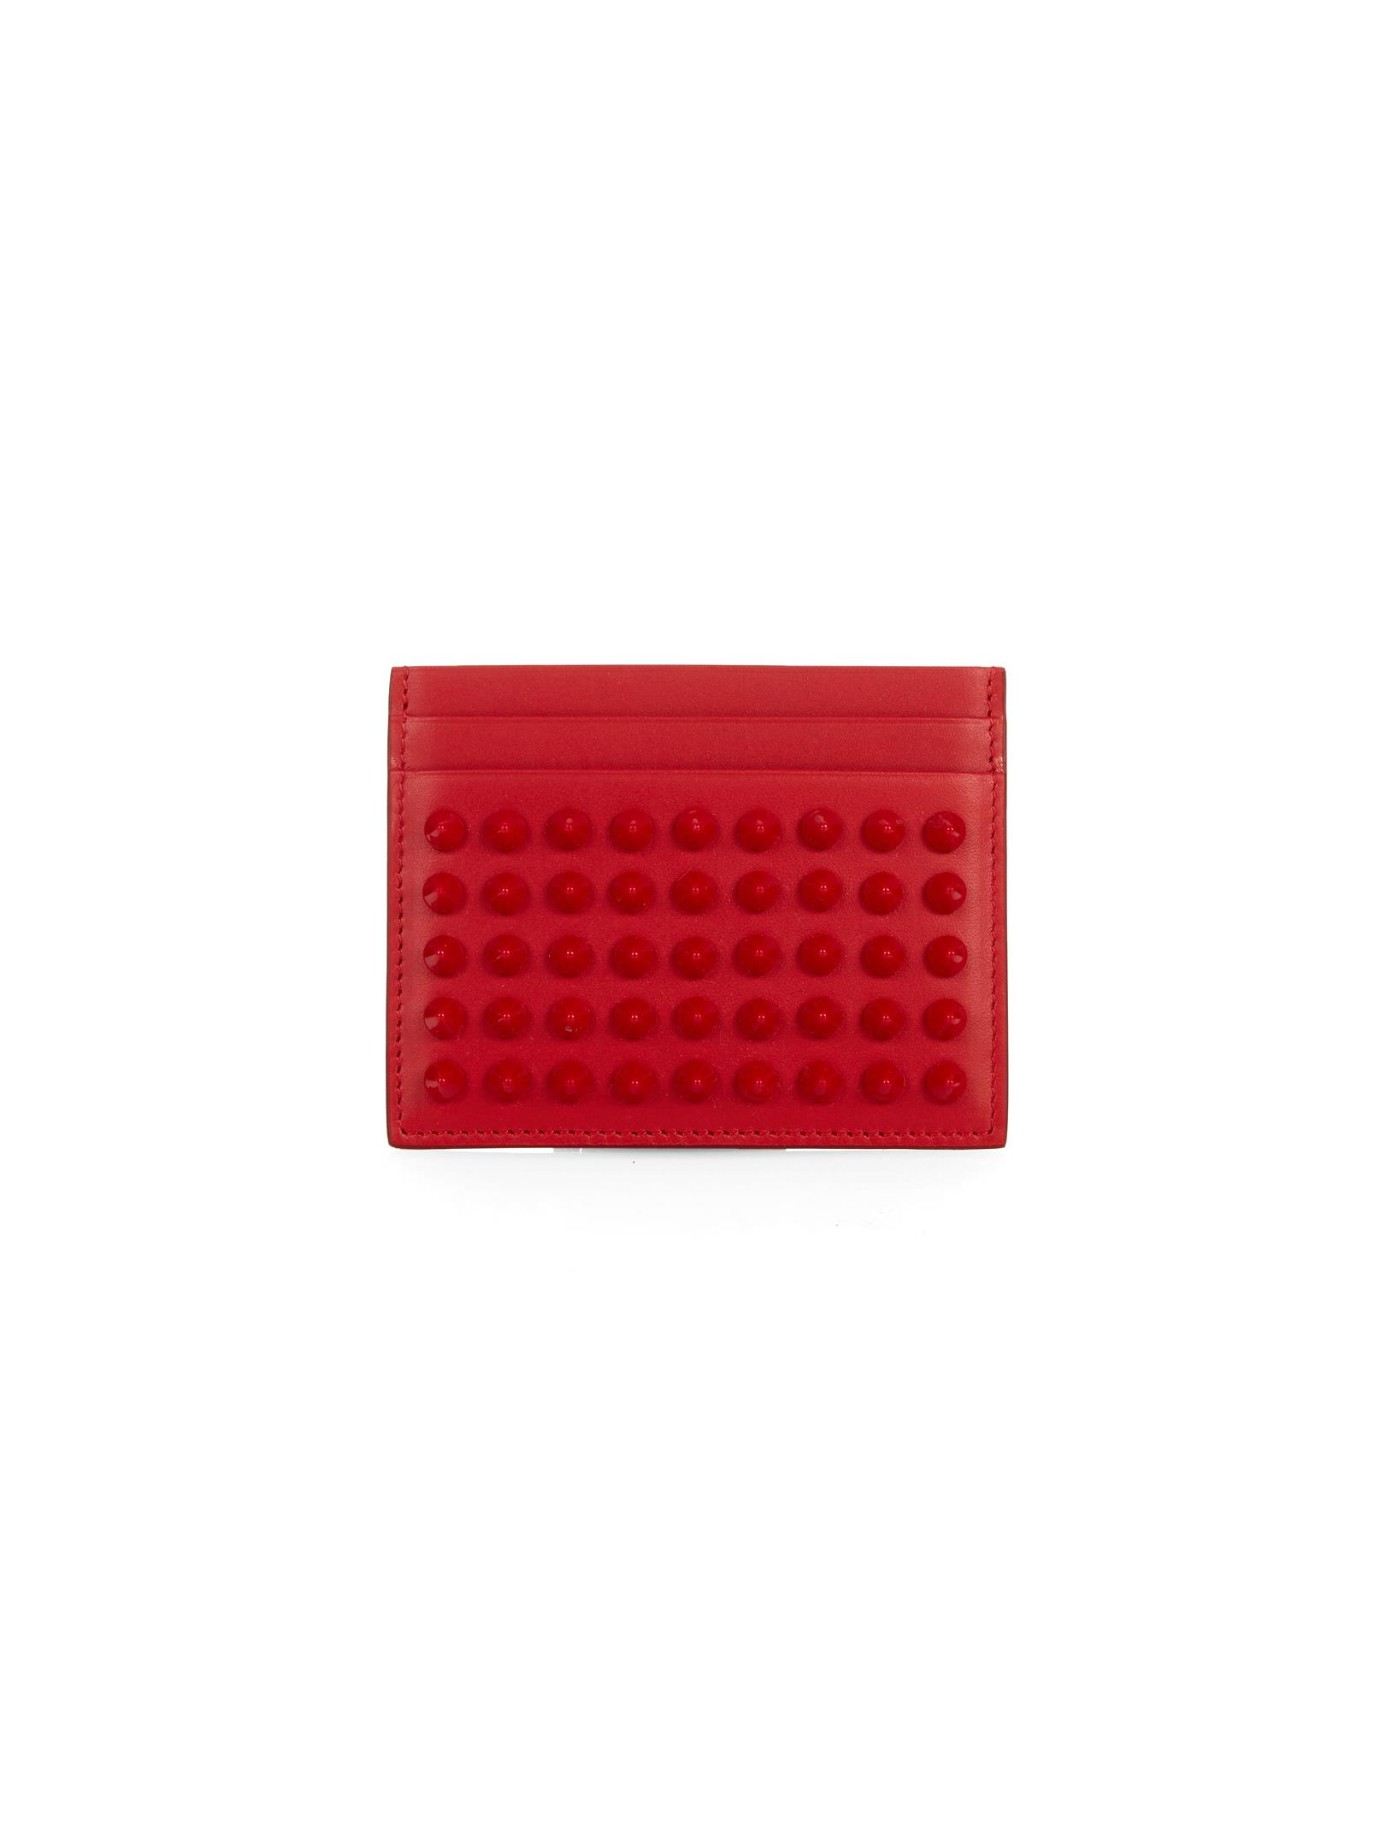 christian louboutin red card